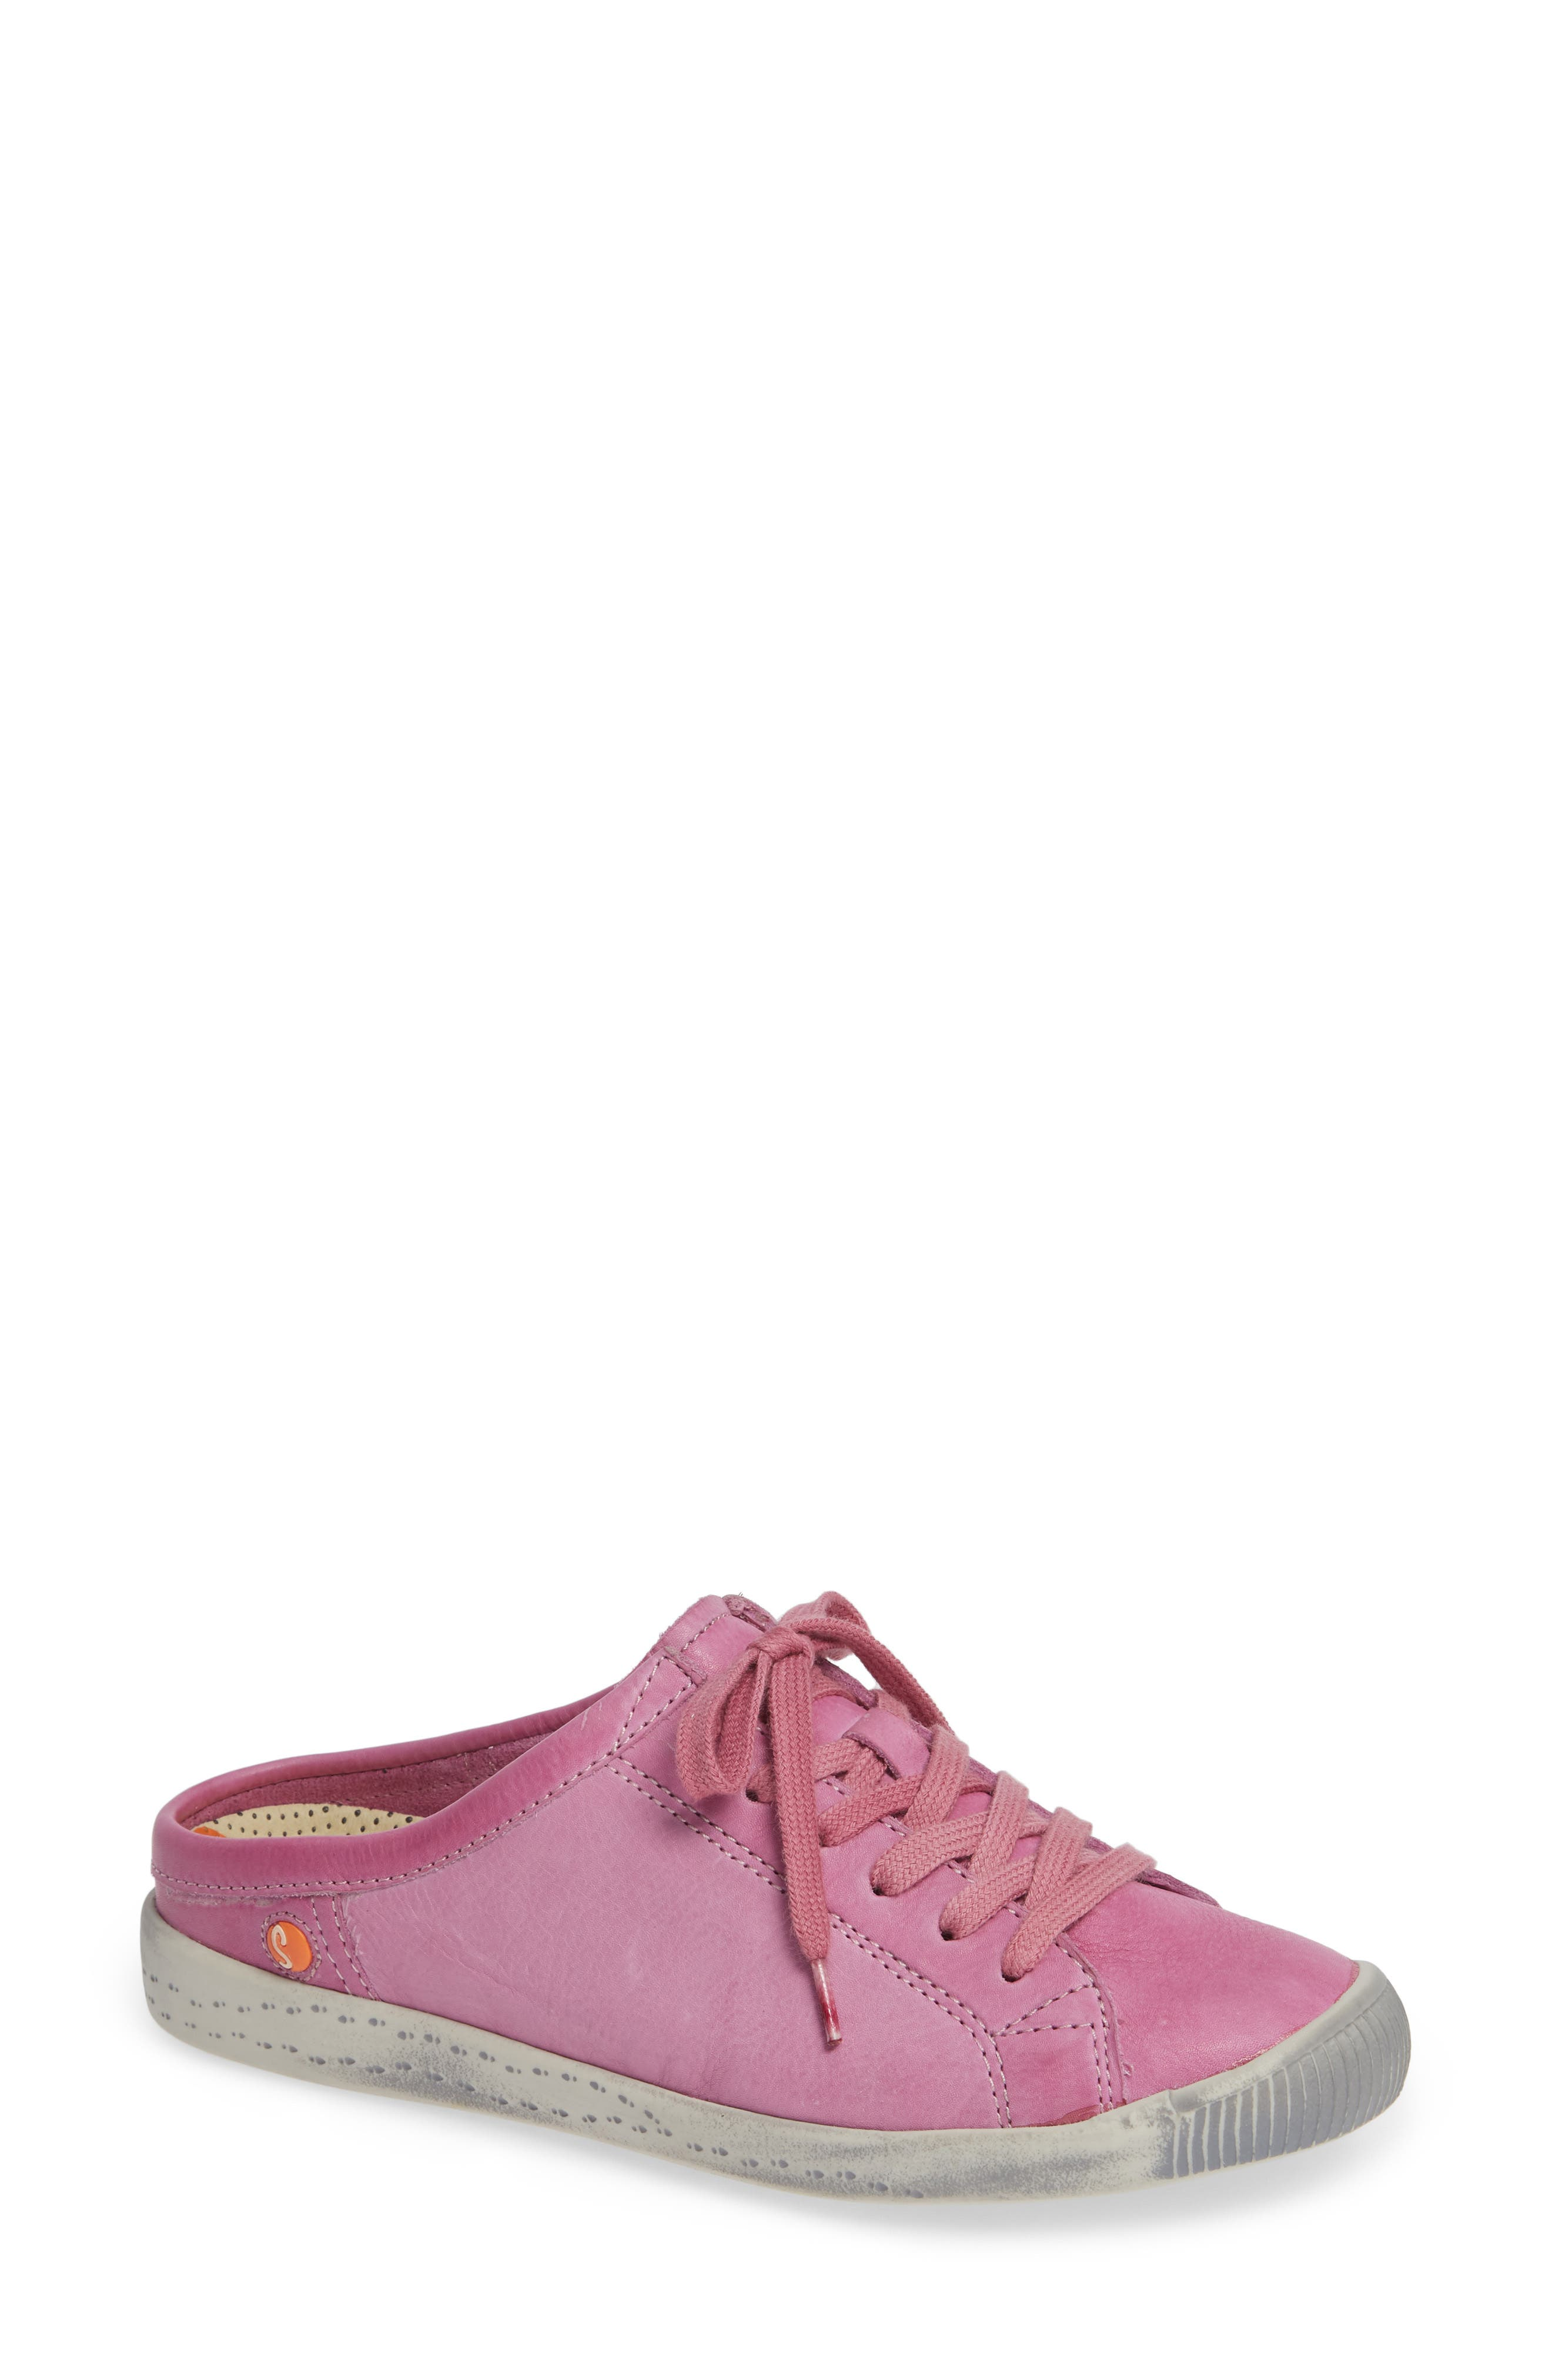 Softinos By Fly London Ije Sneaker Mule - Pink